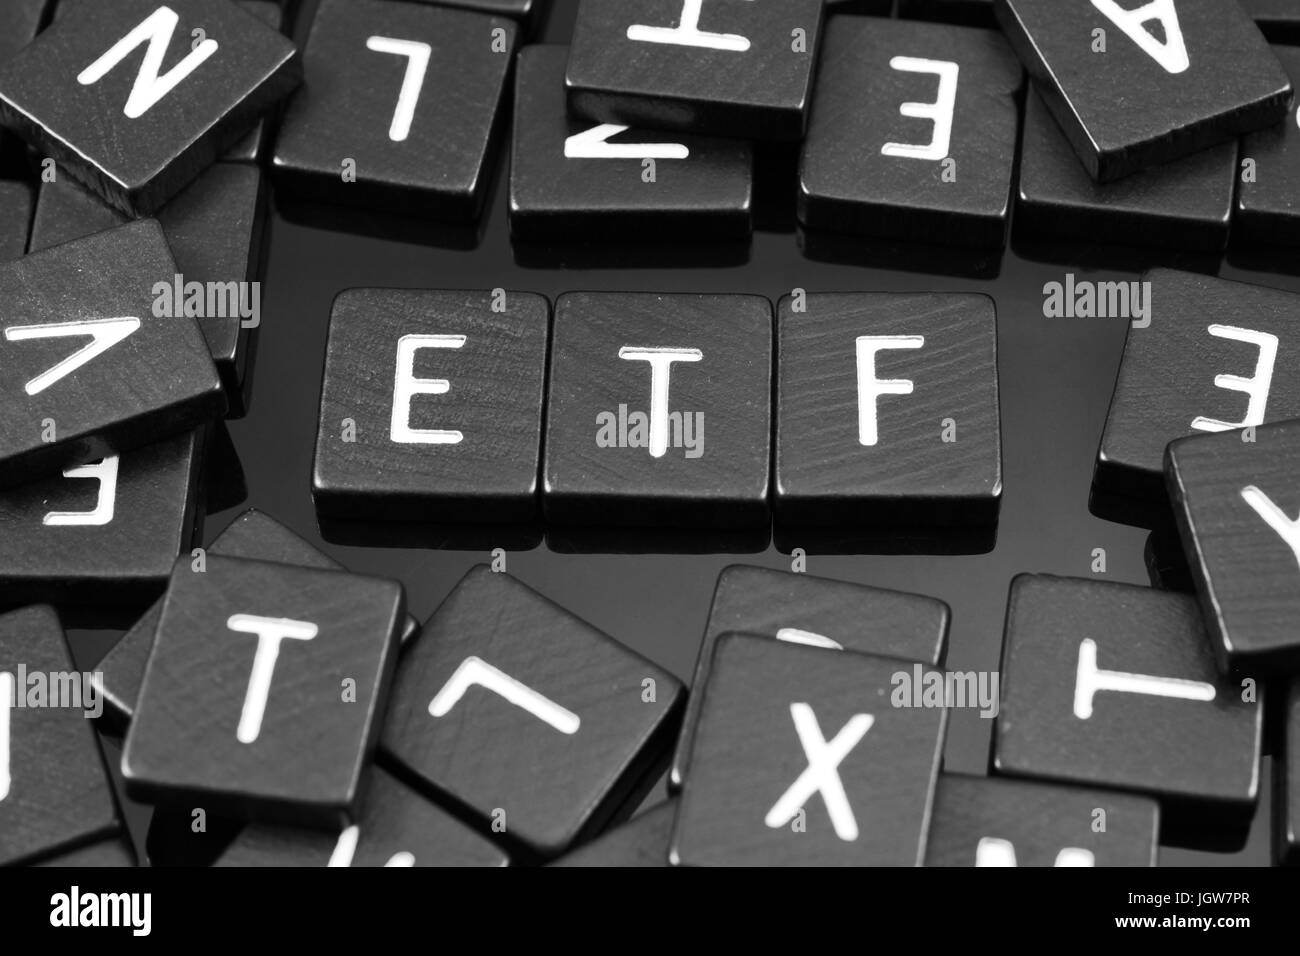 """Black letter tiles spelling the word """"etf"""" on a reflective background Stock Photo"""